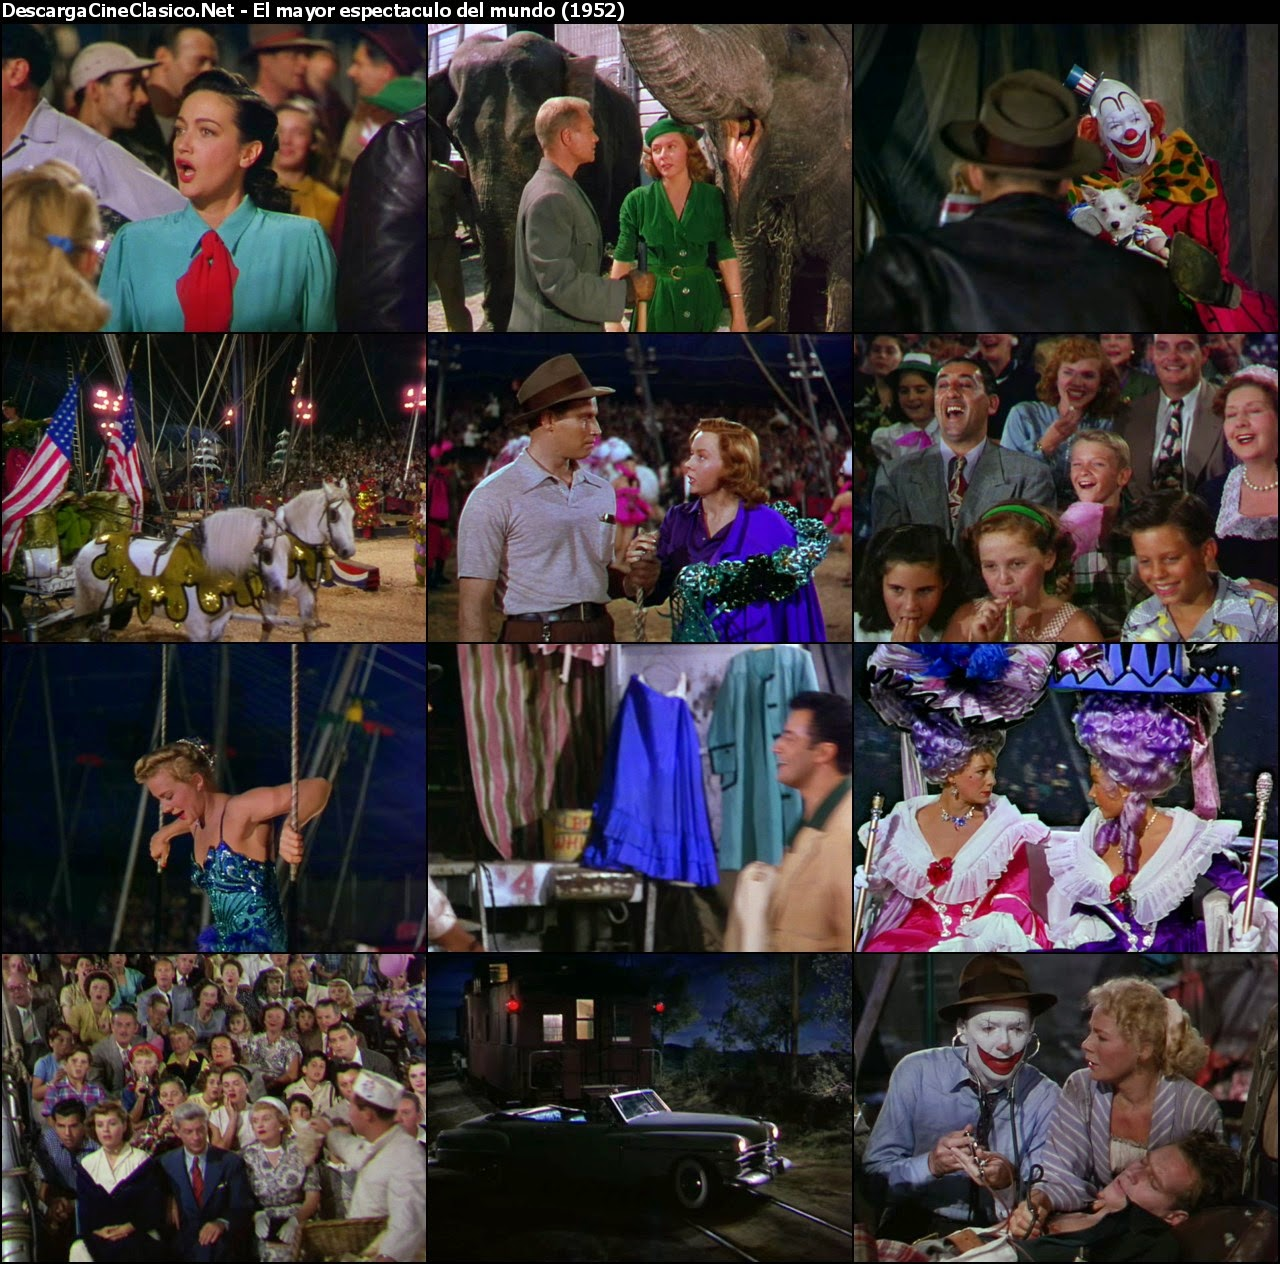 El mayor espectáculo del mundo (The Greatest Show on Earth - 1952)